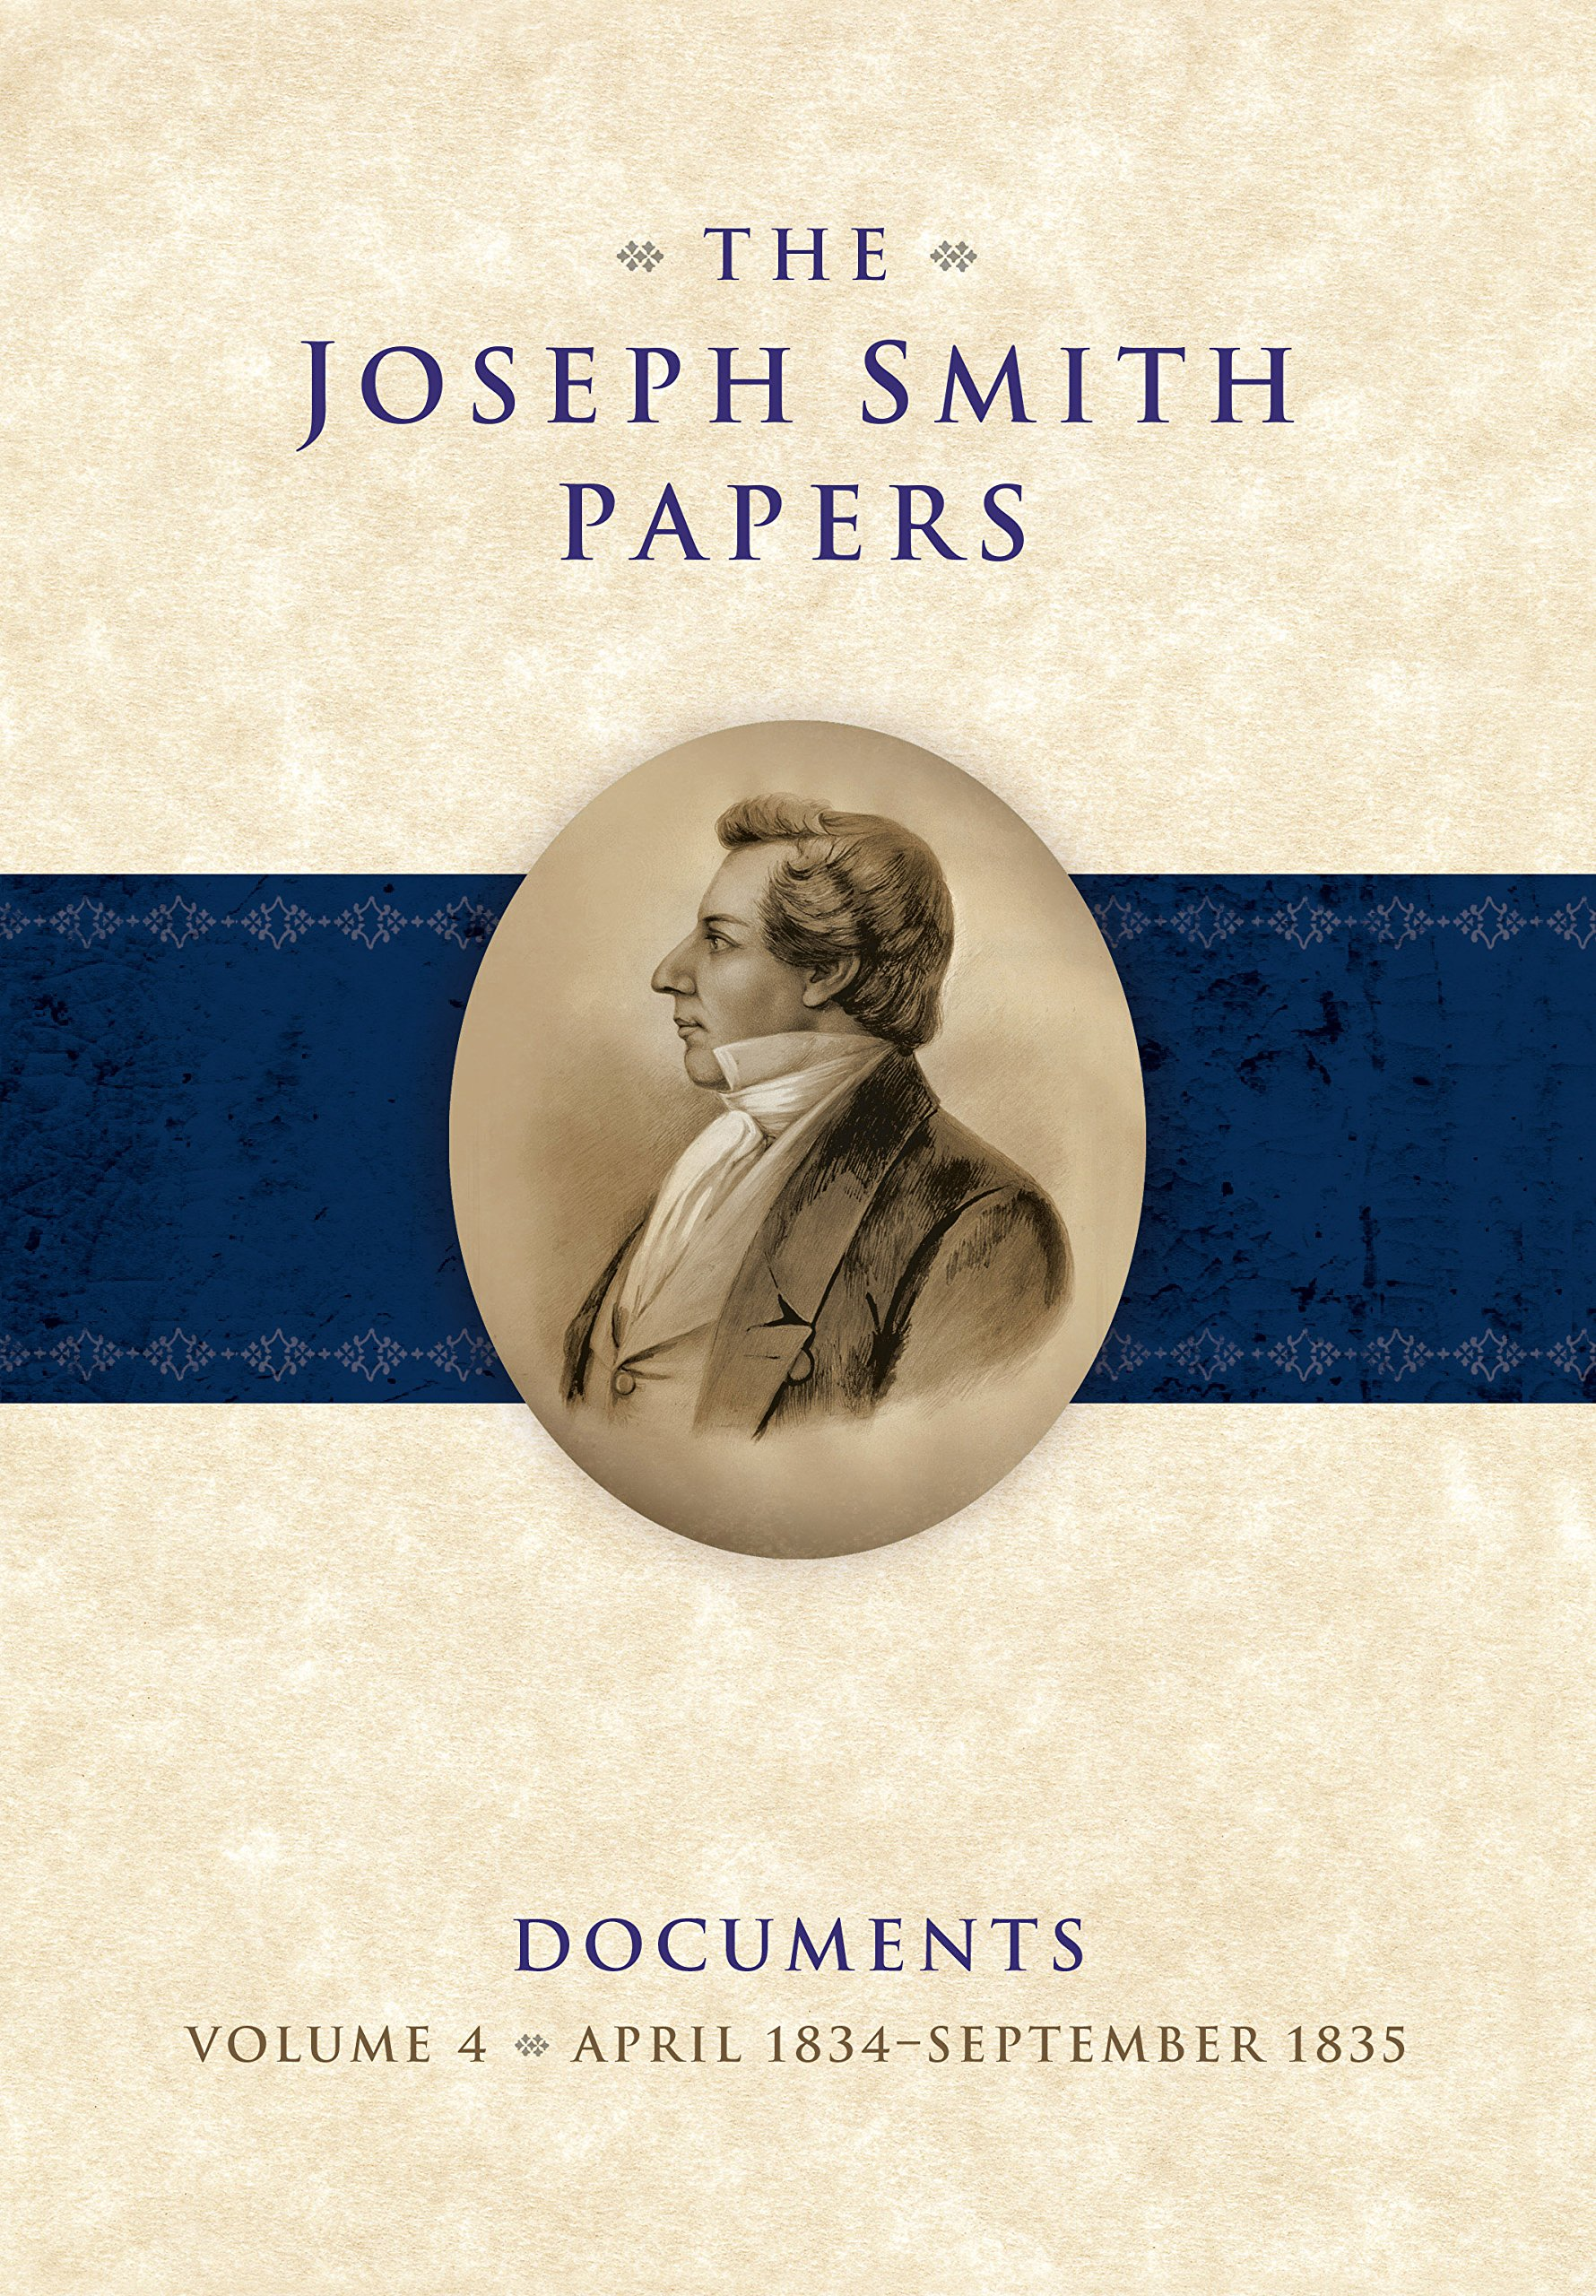 The Joseph Smith Papers: Documents, Volume 4: April 1834-September 1835